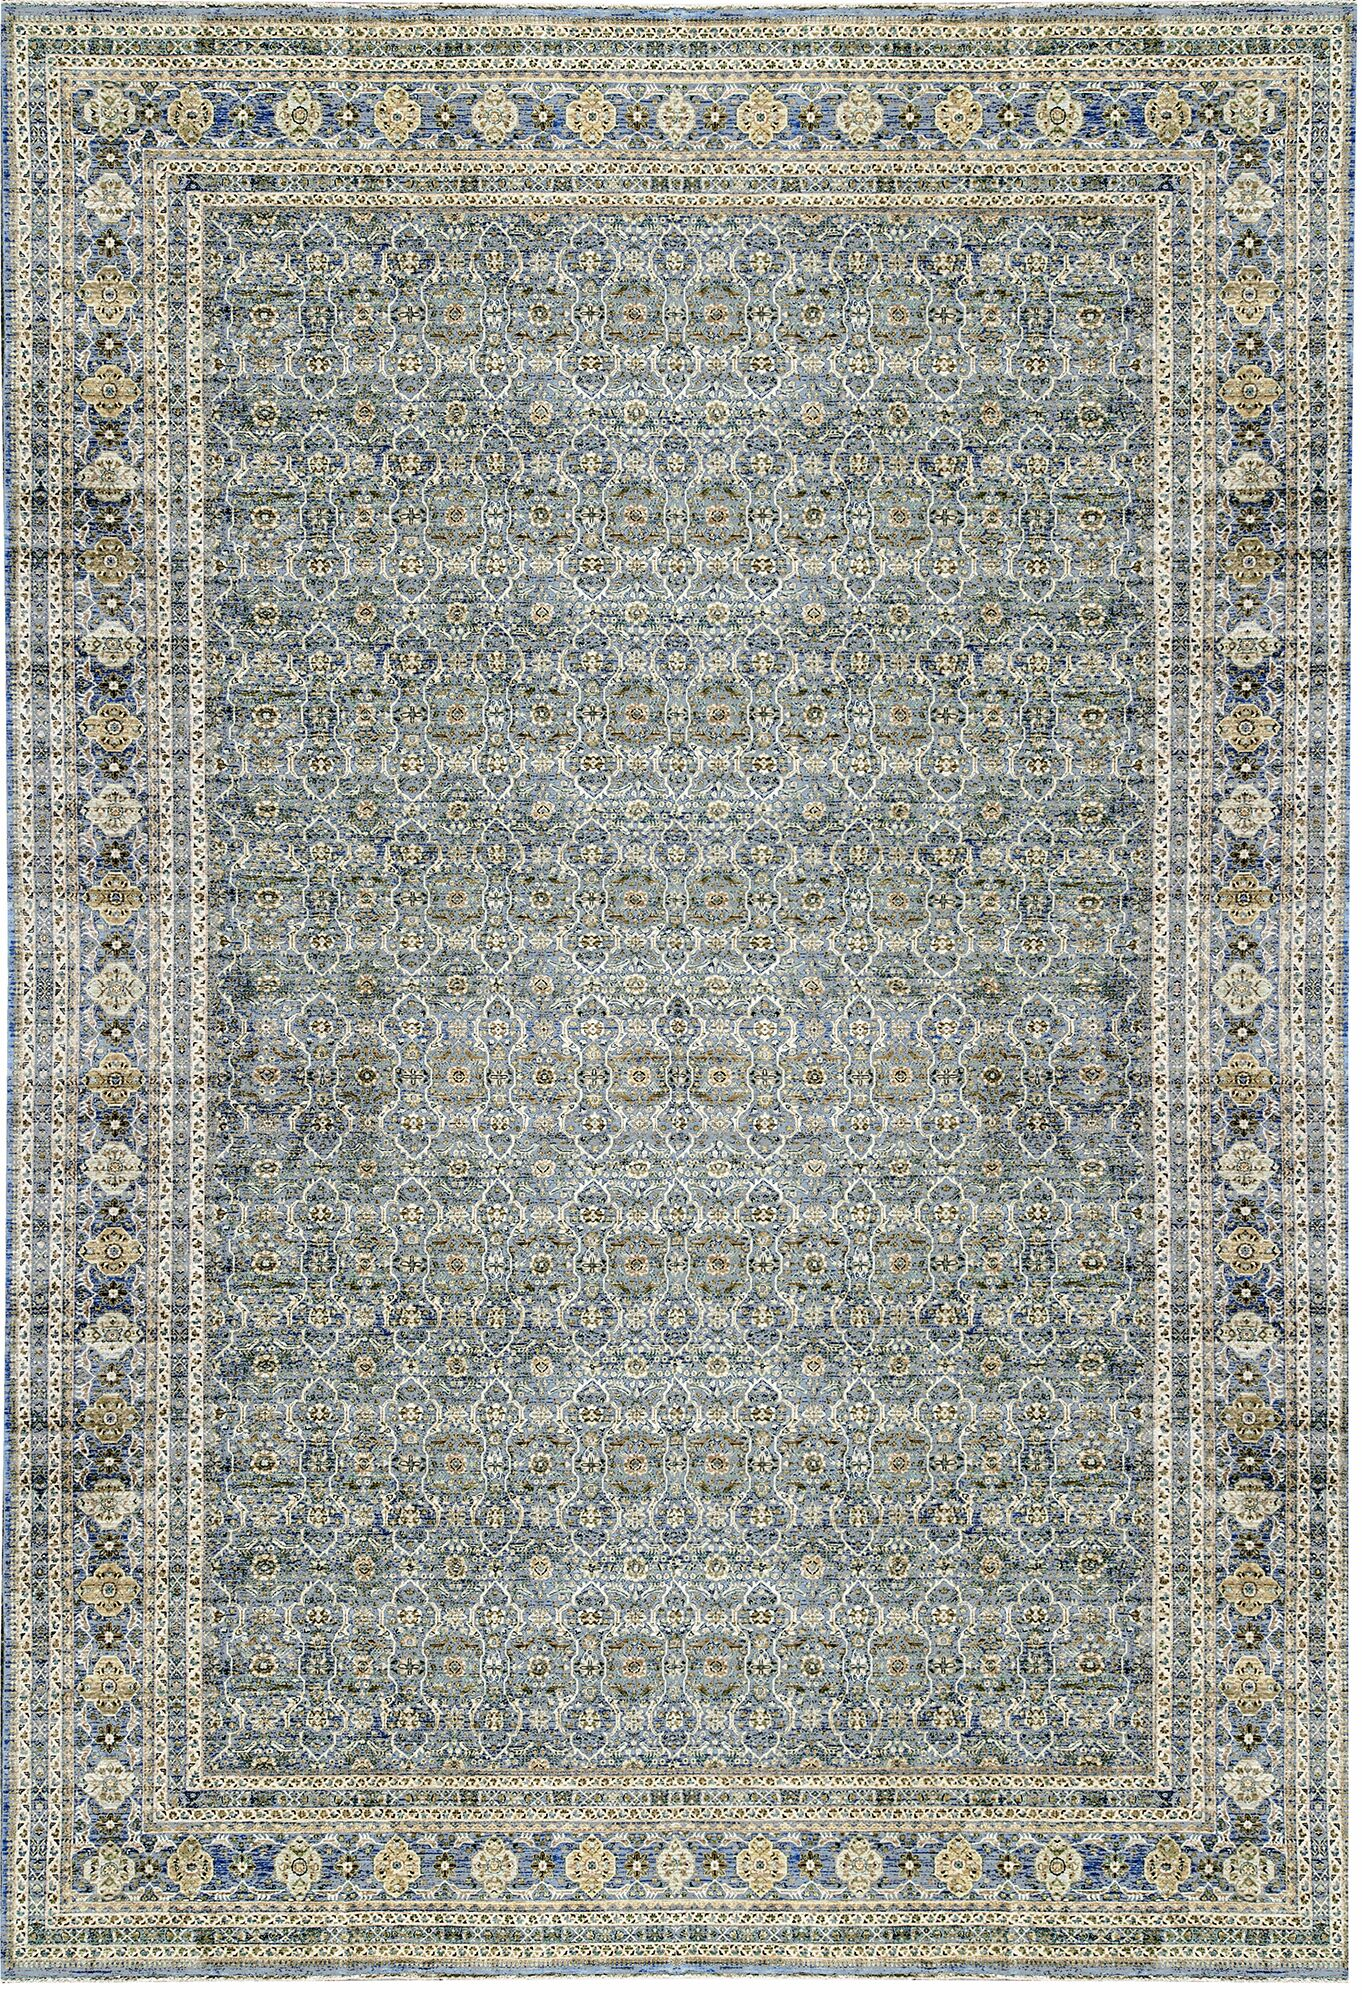 One-of-a-Kind Nooristan Hand-Knotted Wool Beige/Blue Indoor Area Rug